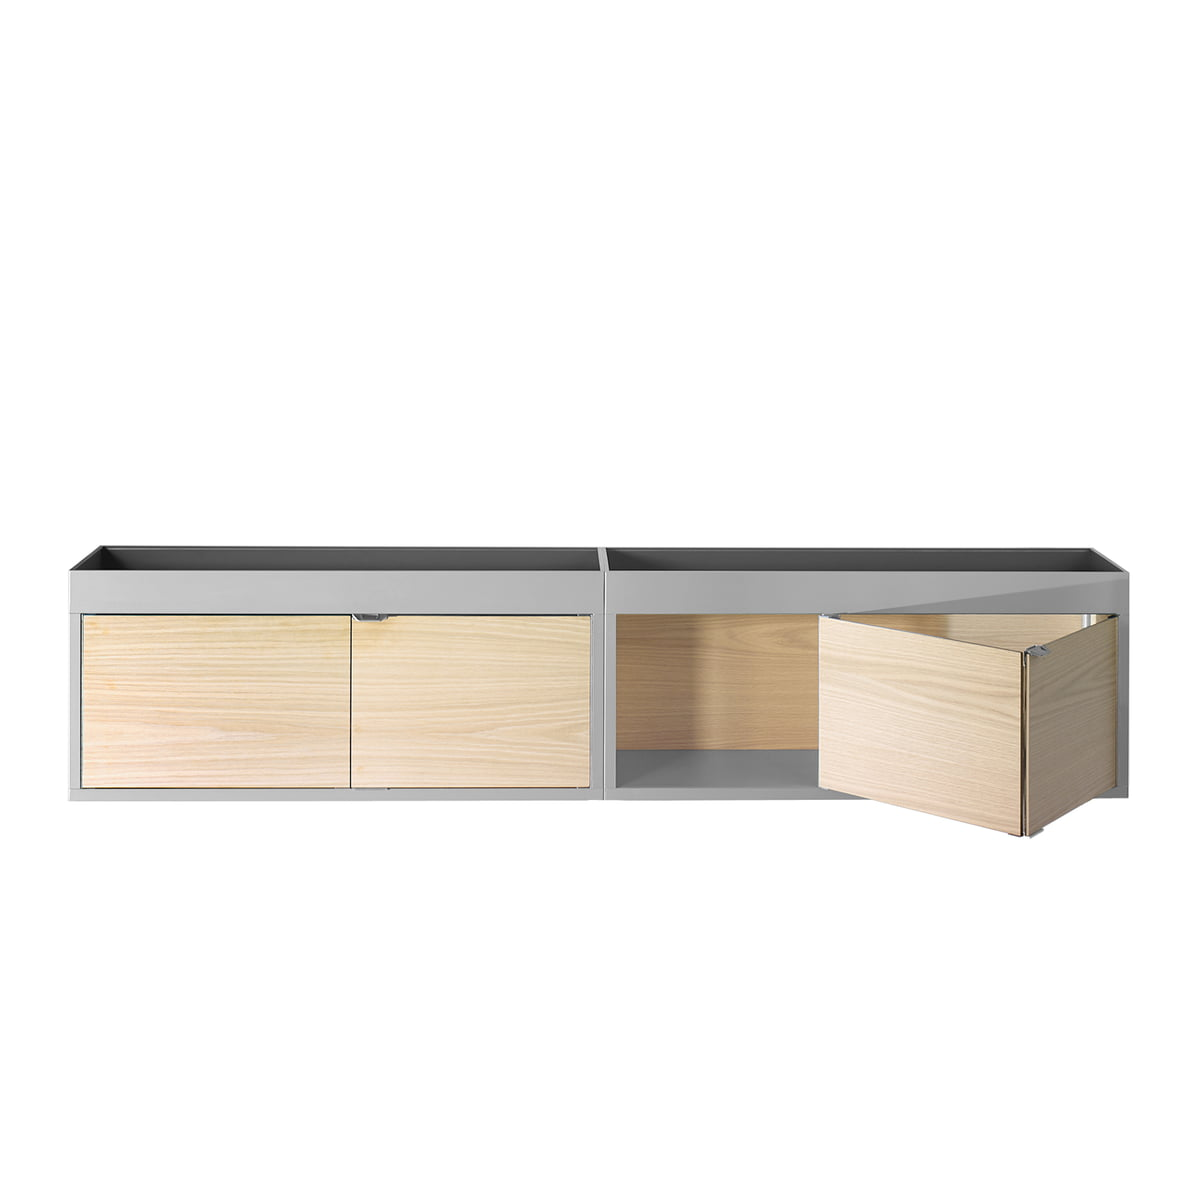 Shop Wall Cabinets New Order Wall Mounted Shelf By Hay In The Design Shop